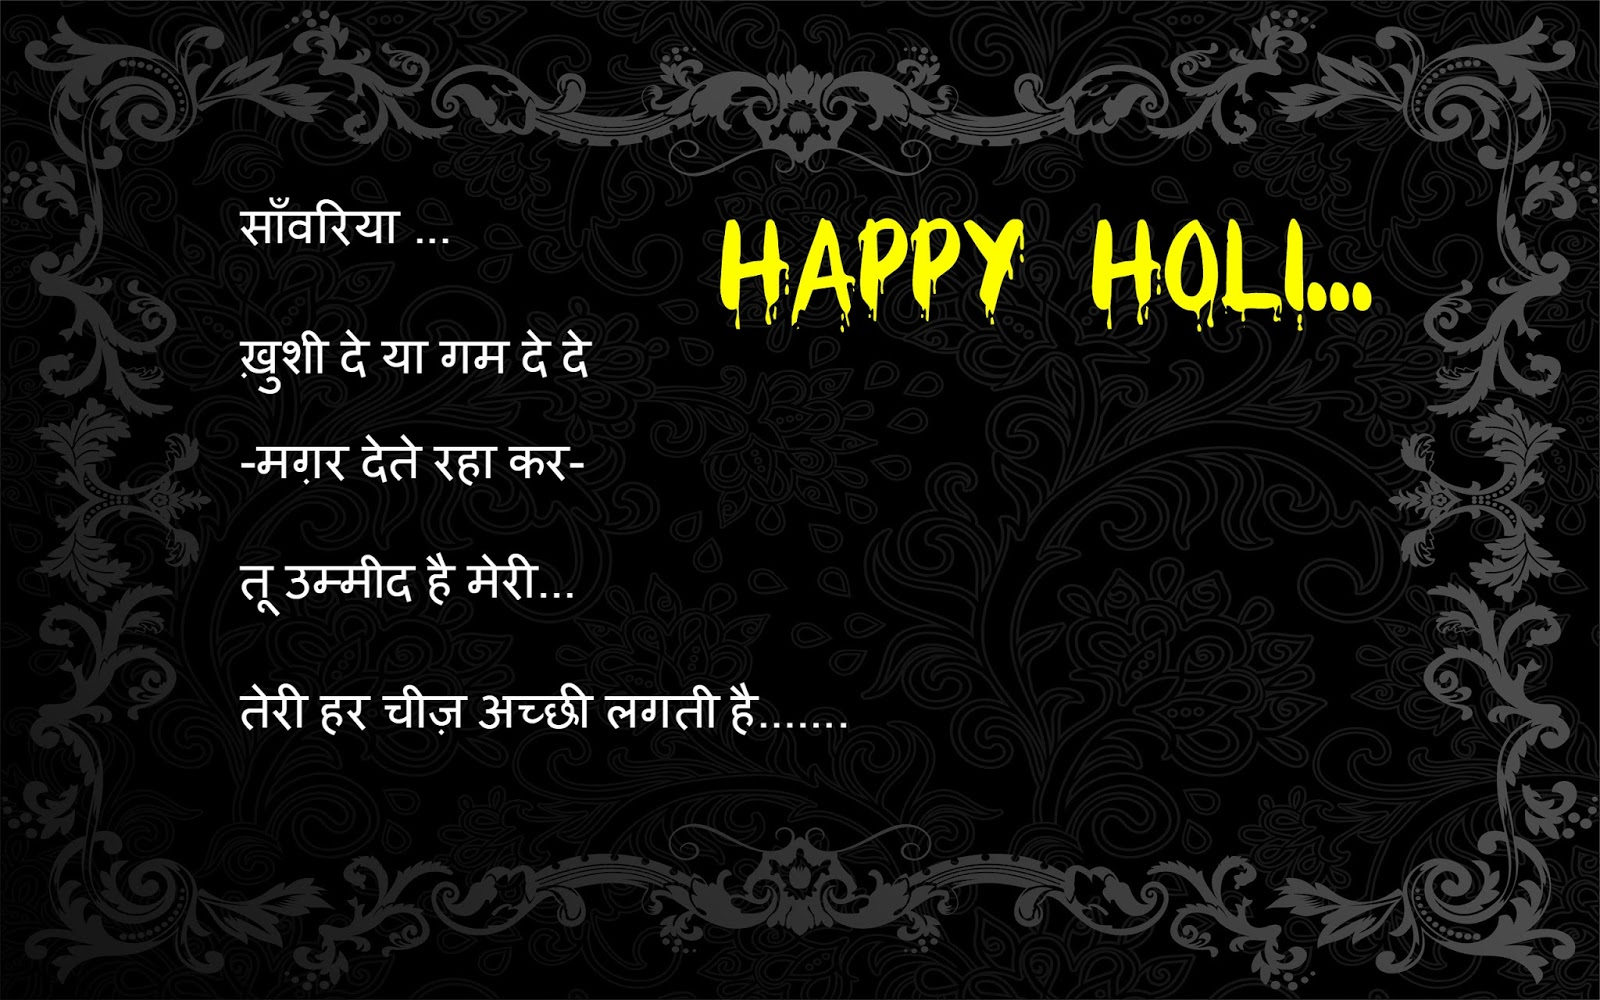 holi holi img2016%2B%25284%2529 - Best Shayari images of holi 50+